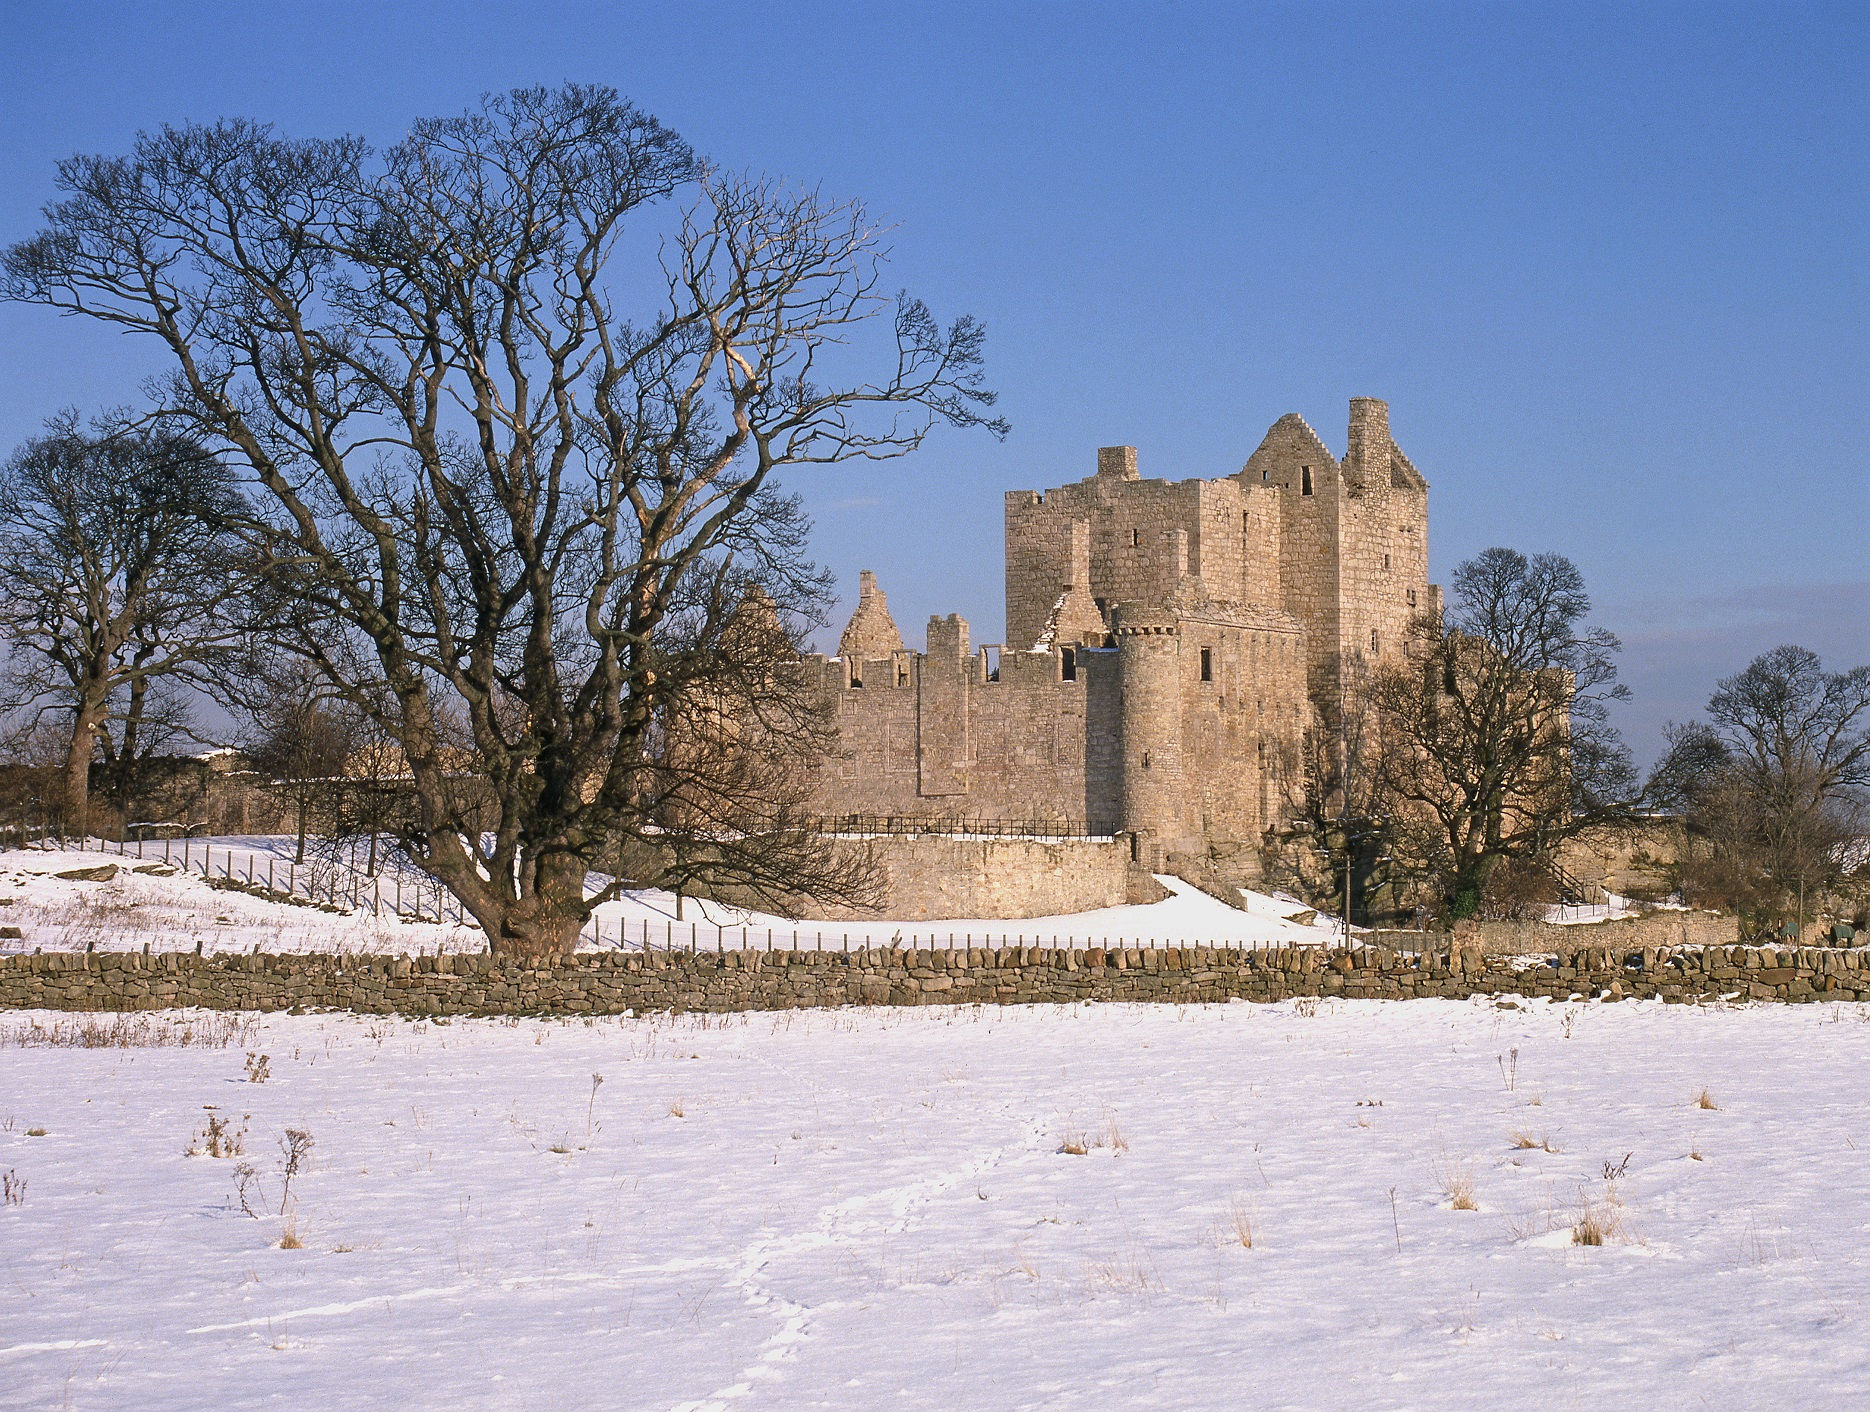 craigmillar castle in the snow